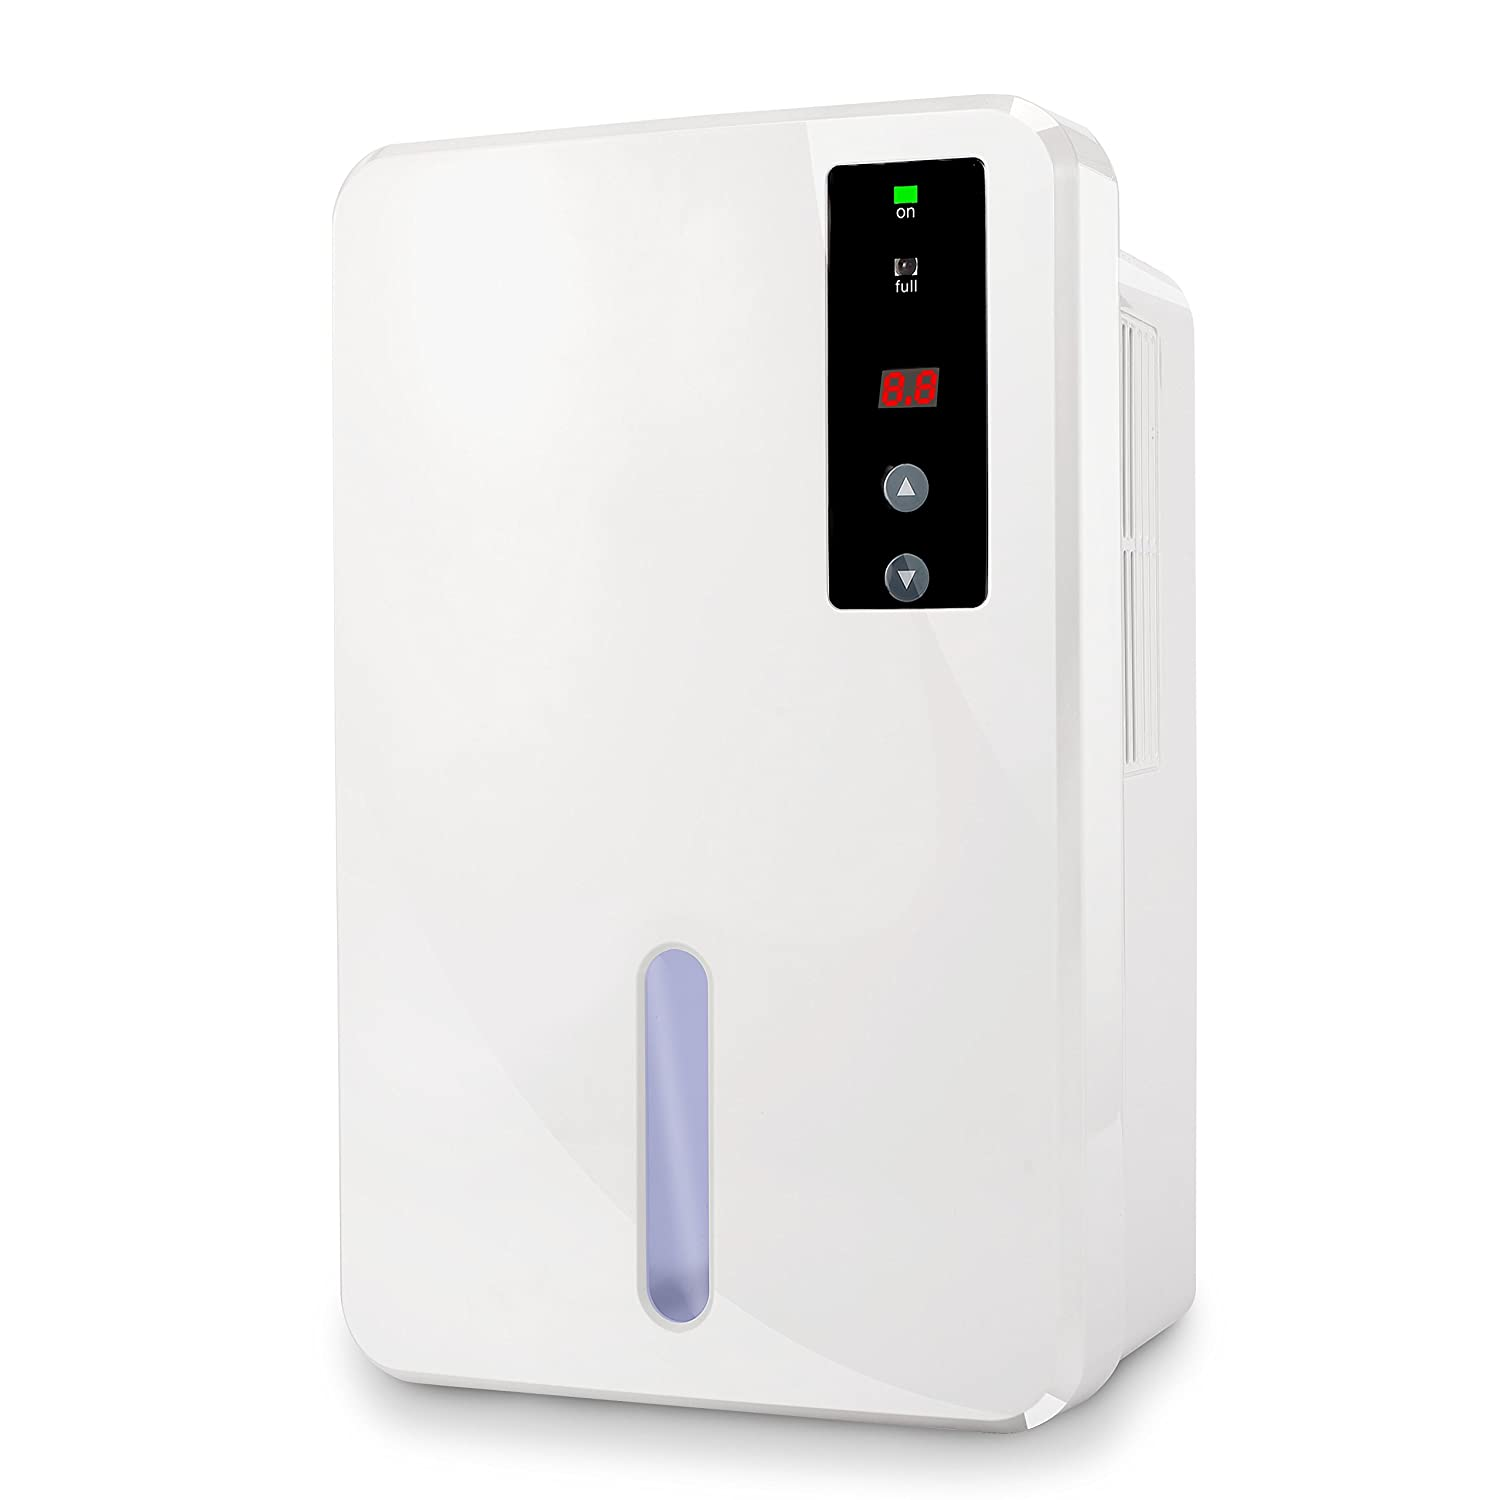 MANZOKU Dehumidifier 1500ml Portable Electric Air Dehumidifiers with LED Display, Quiet and Compact for Damp, Mould, Moisture, Humidity Removal in Home, Wardrobe, Bathroom, Car, Office, Garage, RV